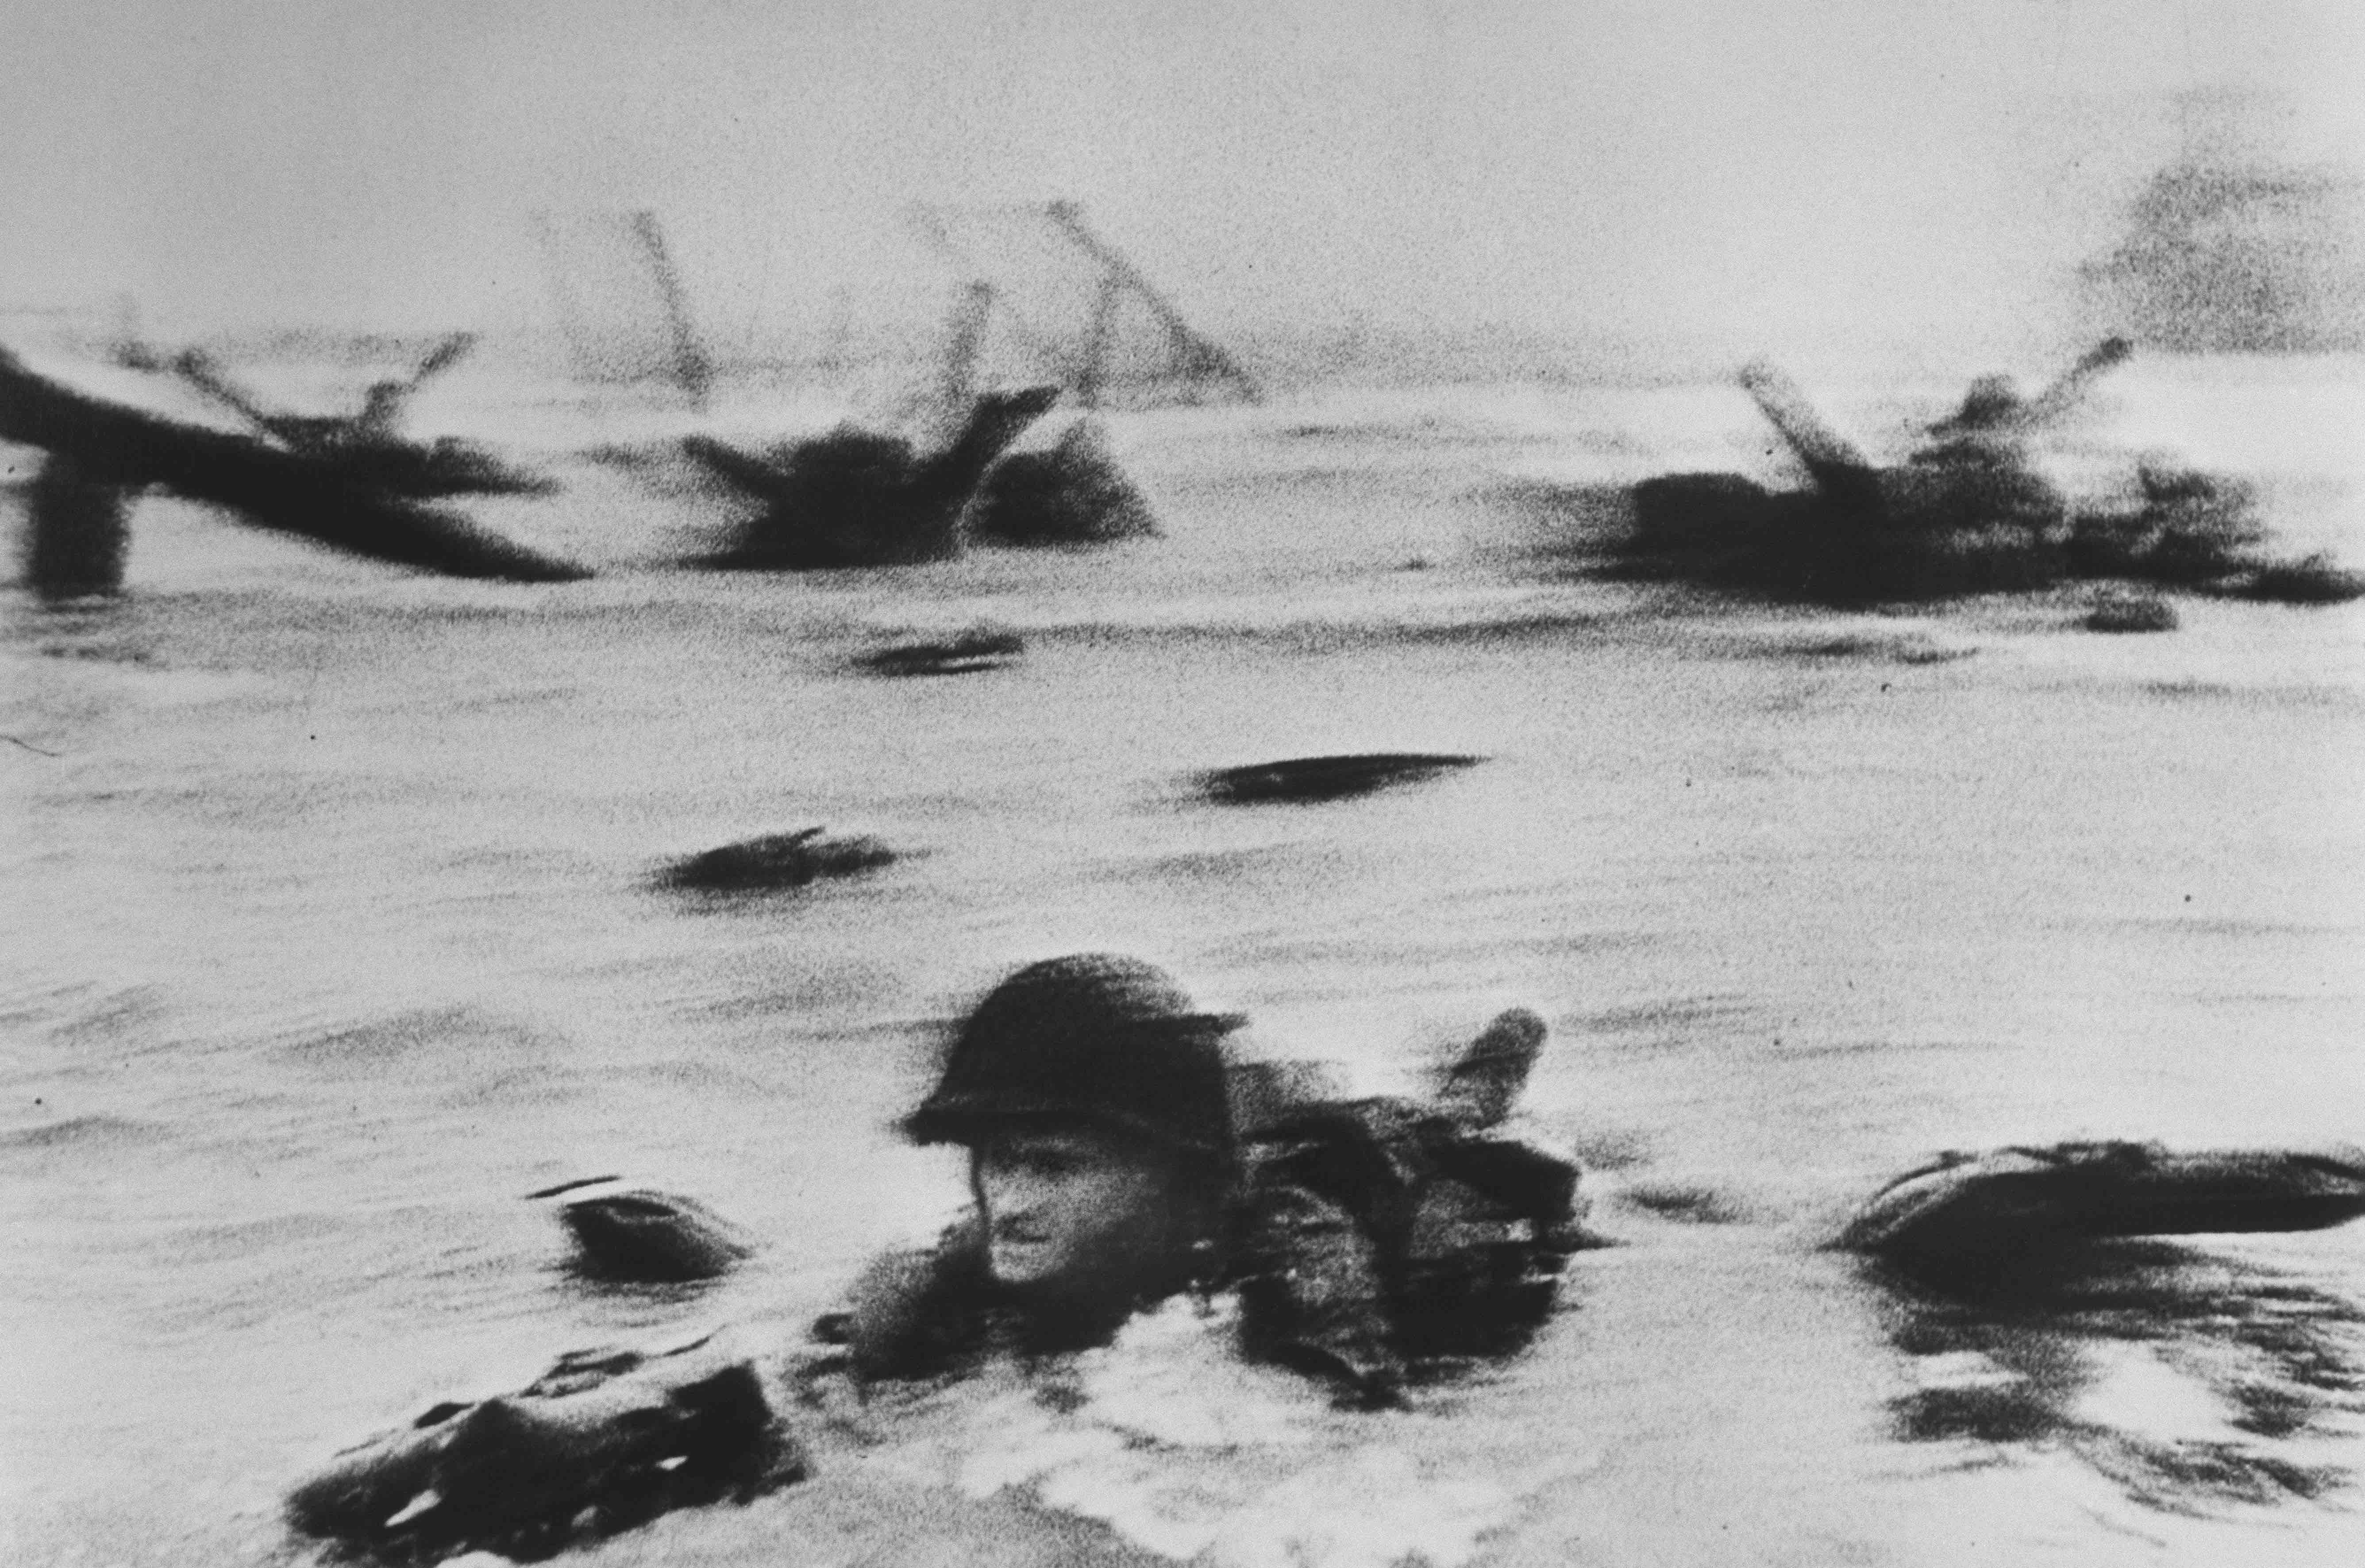 France, Normandy, June 6th 1944 © Robert Capa / International Center of Photography.